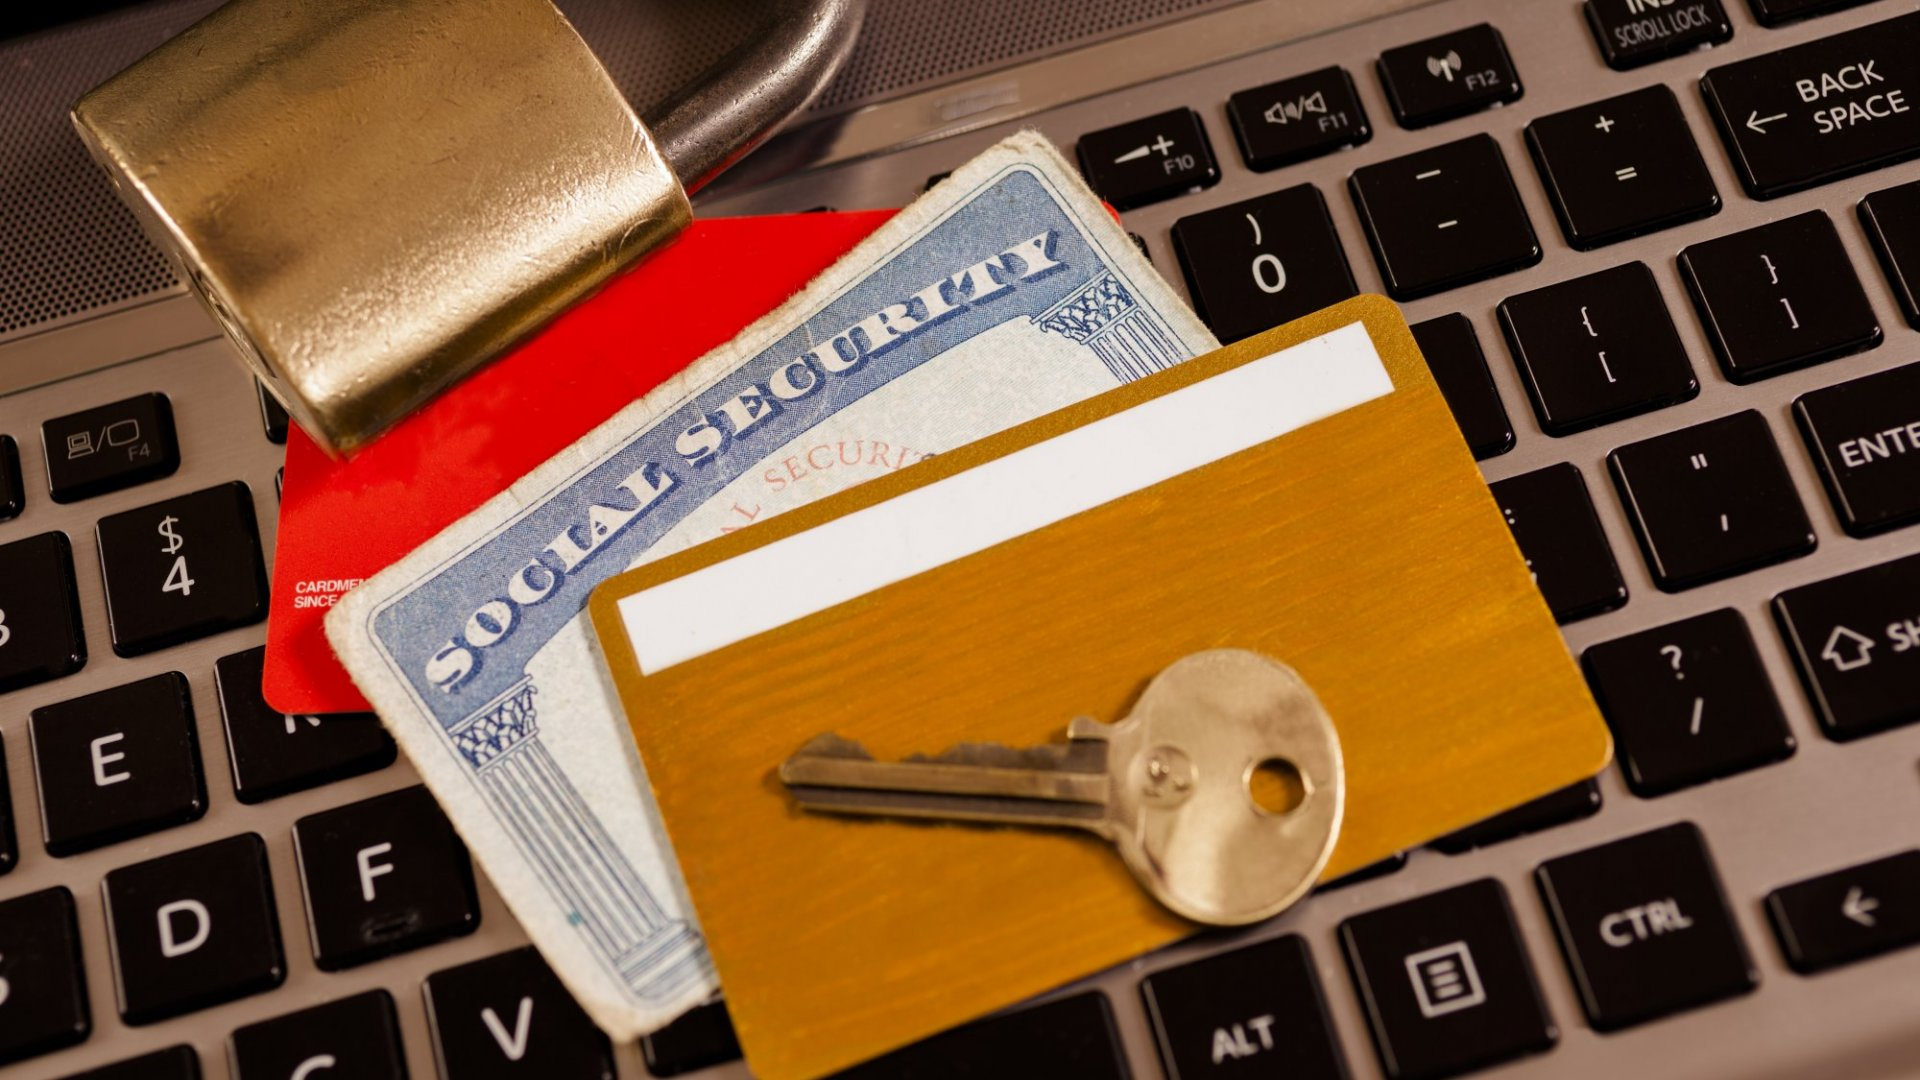 Identity Thieves Could Be Targeting Your Tax Returns. Here's How to Protect Yourself